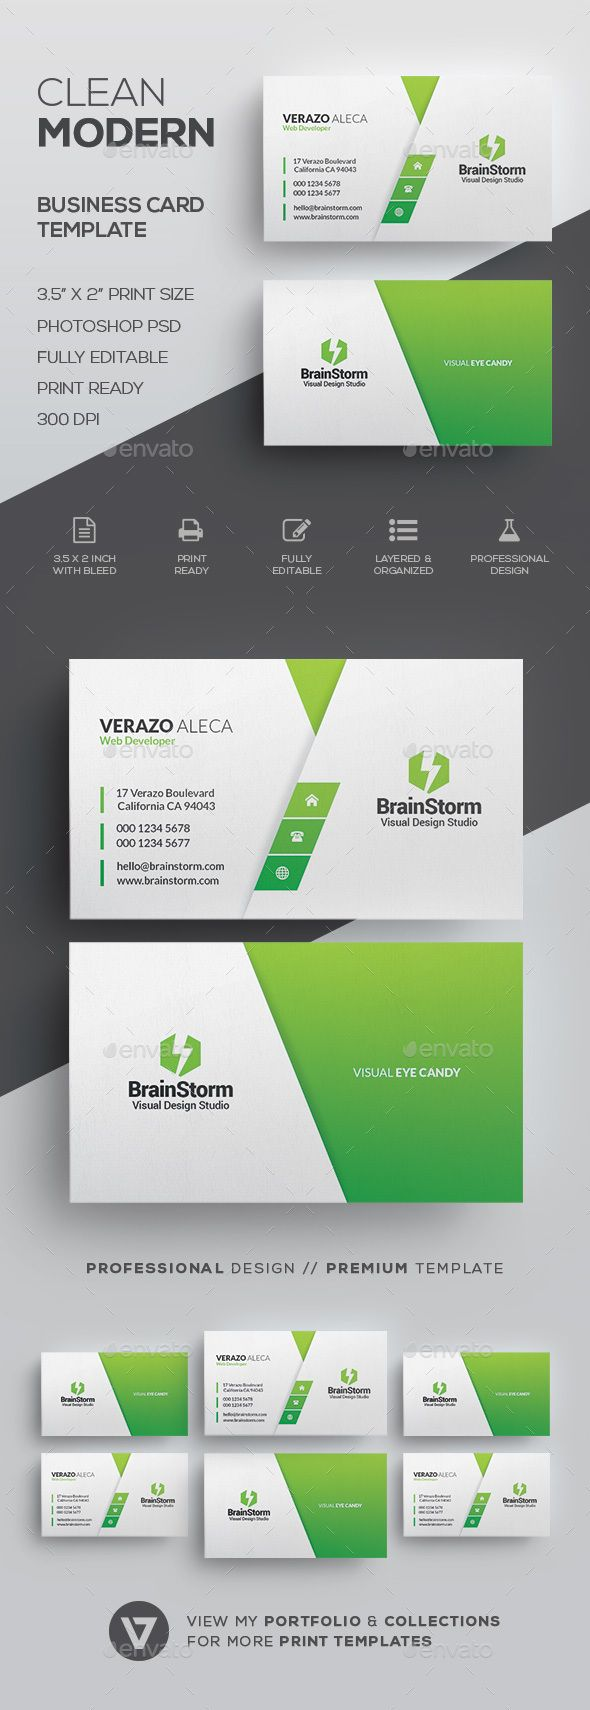 Clean modern business card template card templates buy business clean modern business card template by verazo need more high quality business card view my reheart Choice Image